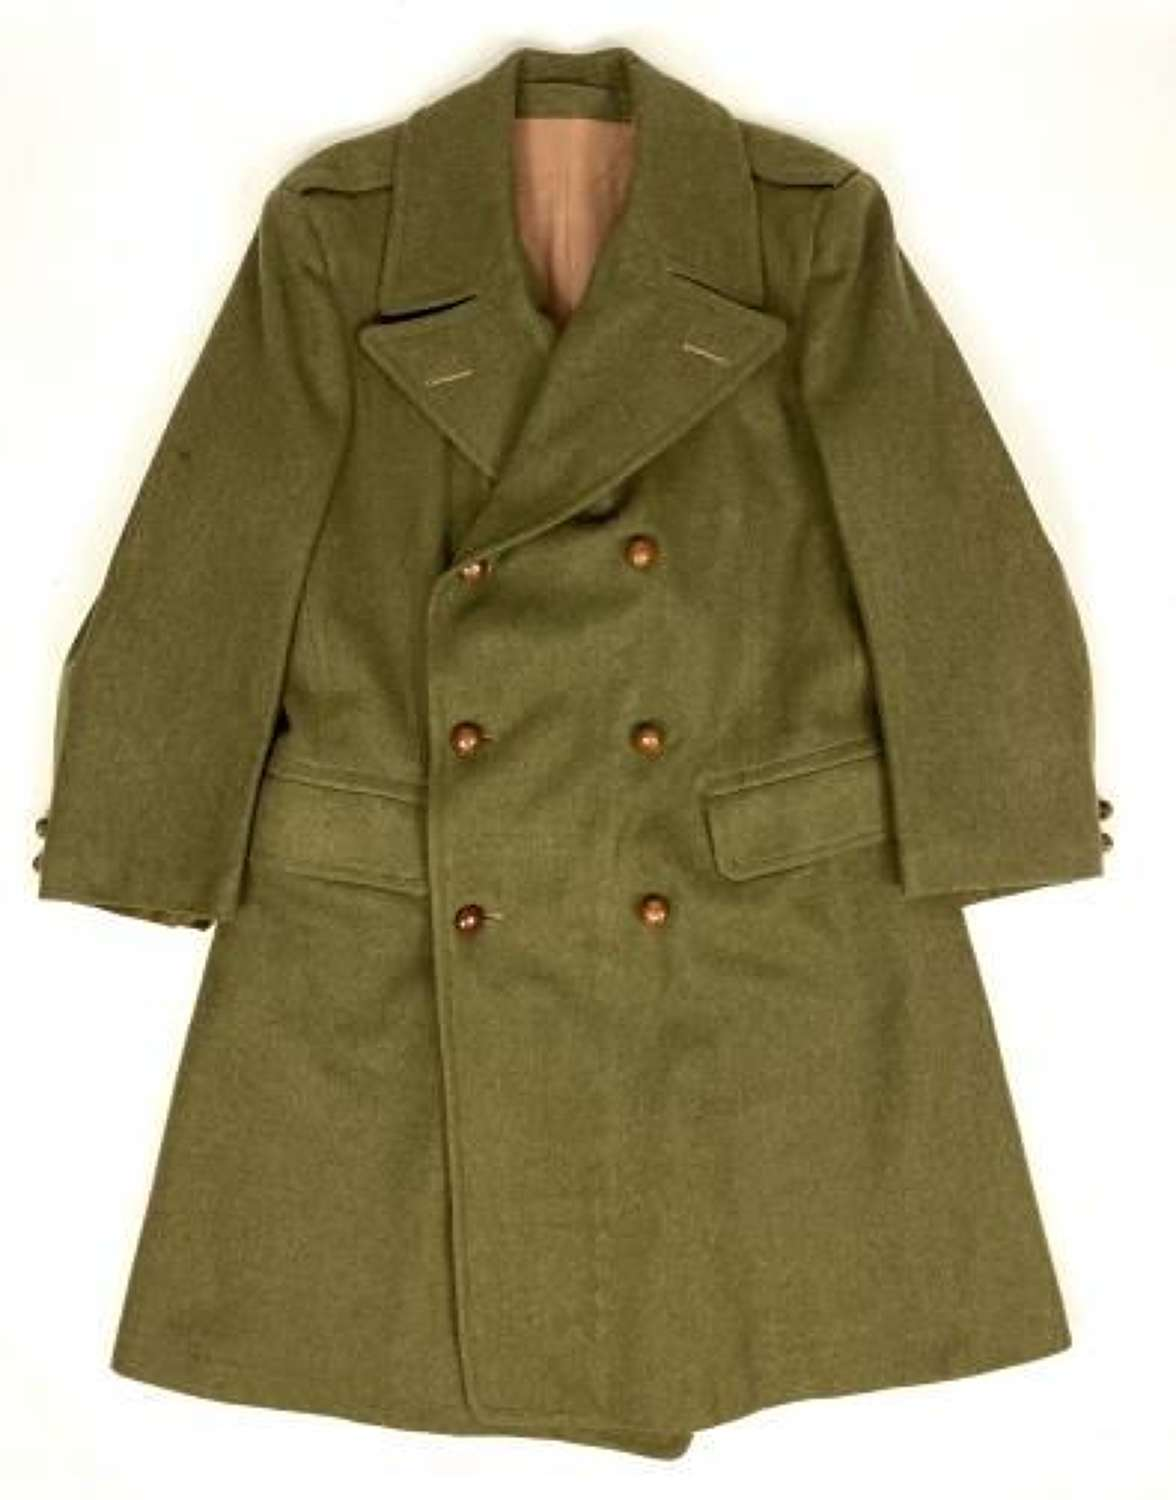 Original 1945 Dated 'Coat, British Warm'